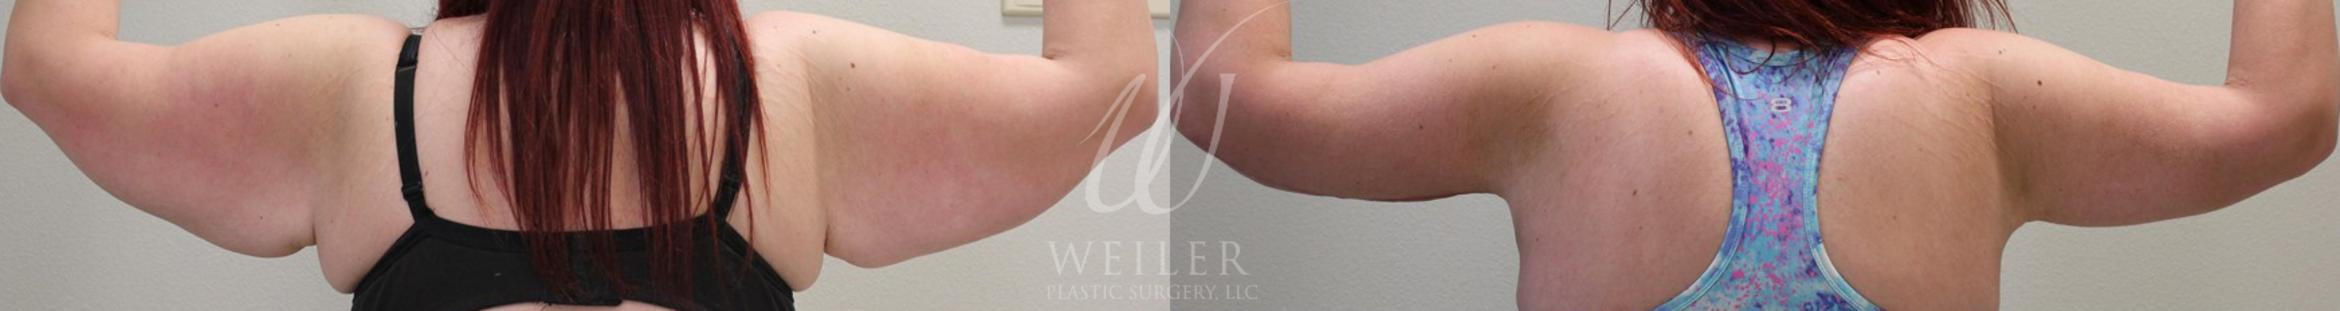 Arm Lift Before & After Photo | Baton Rouge, Louisiana | Weiler Plastic Surgery